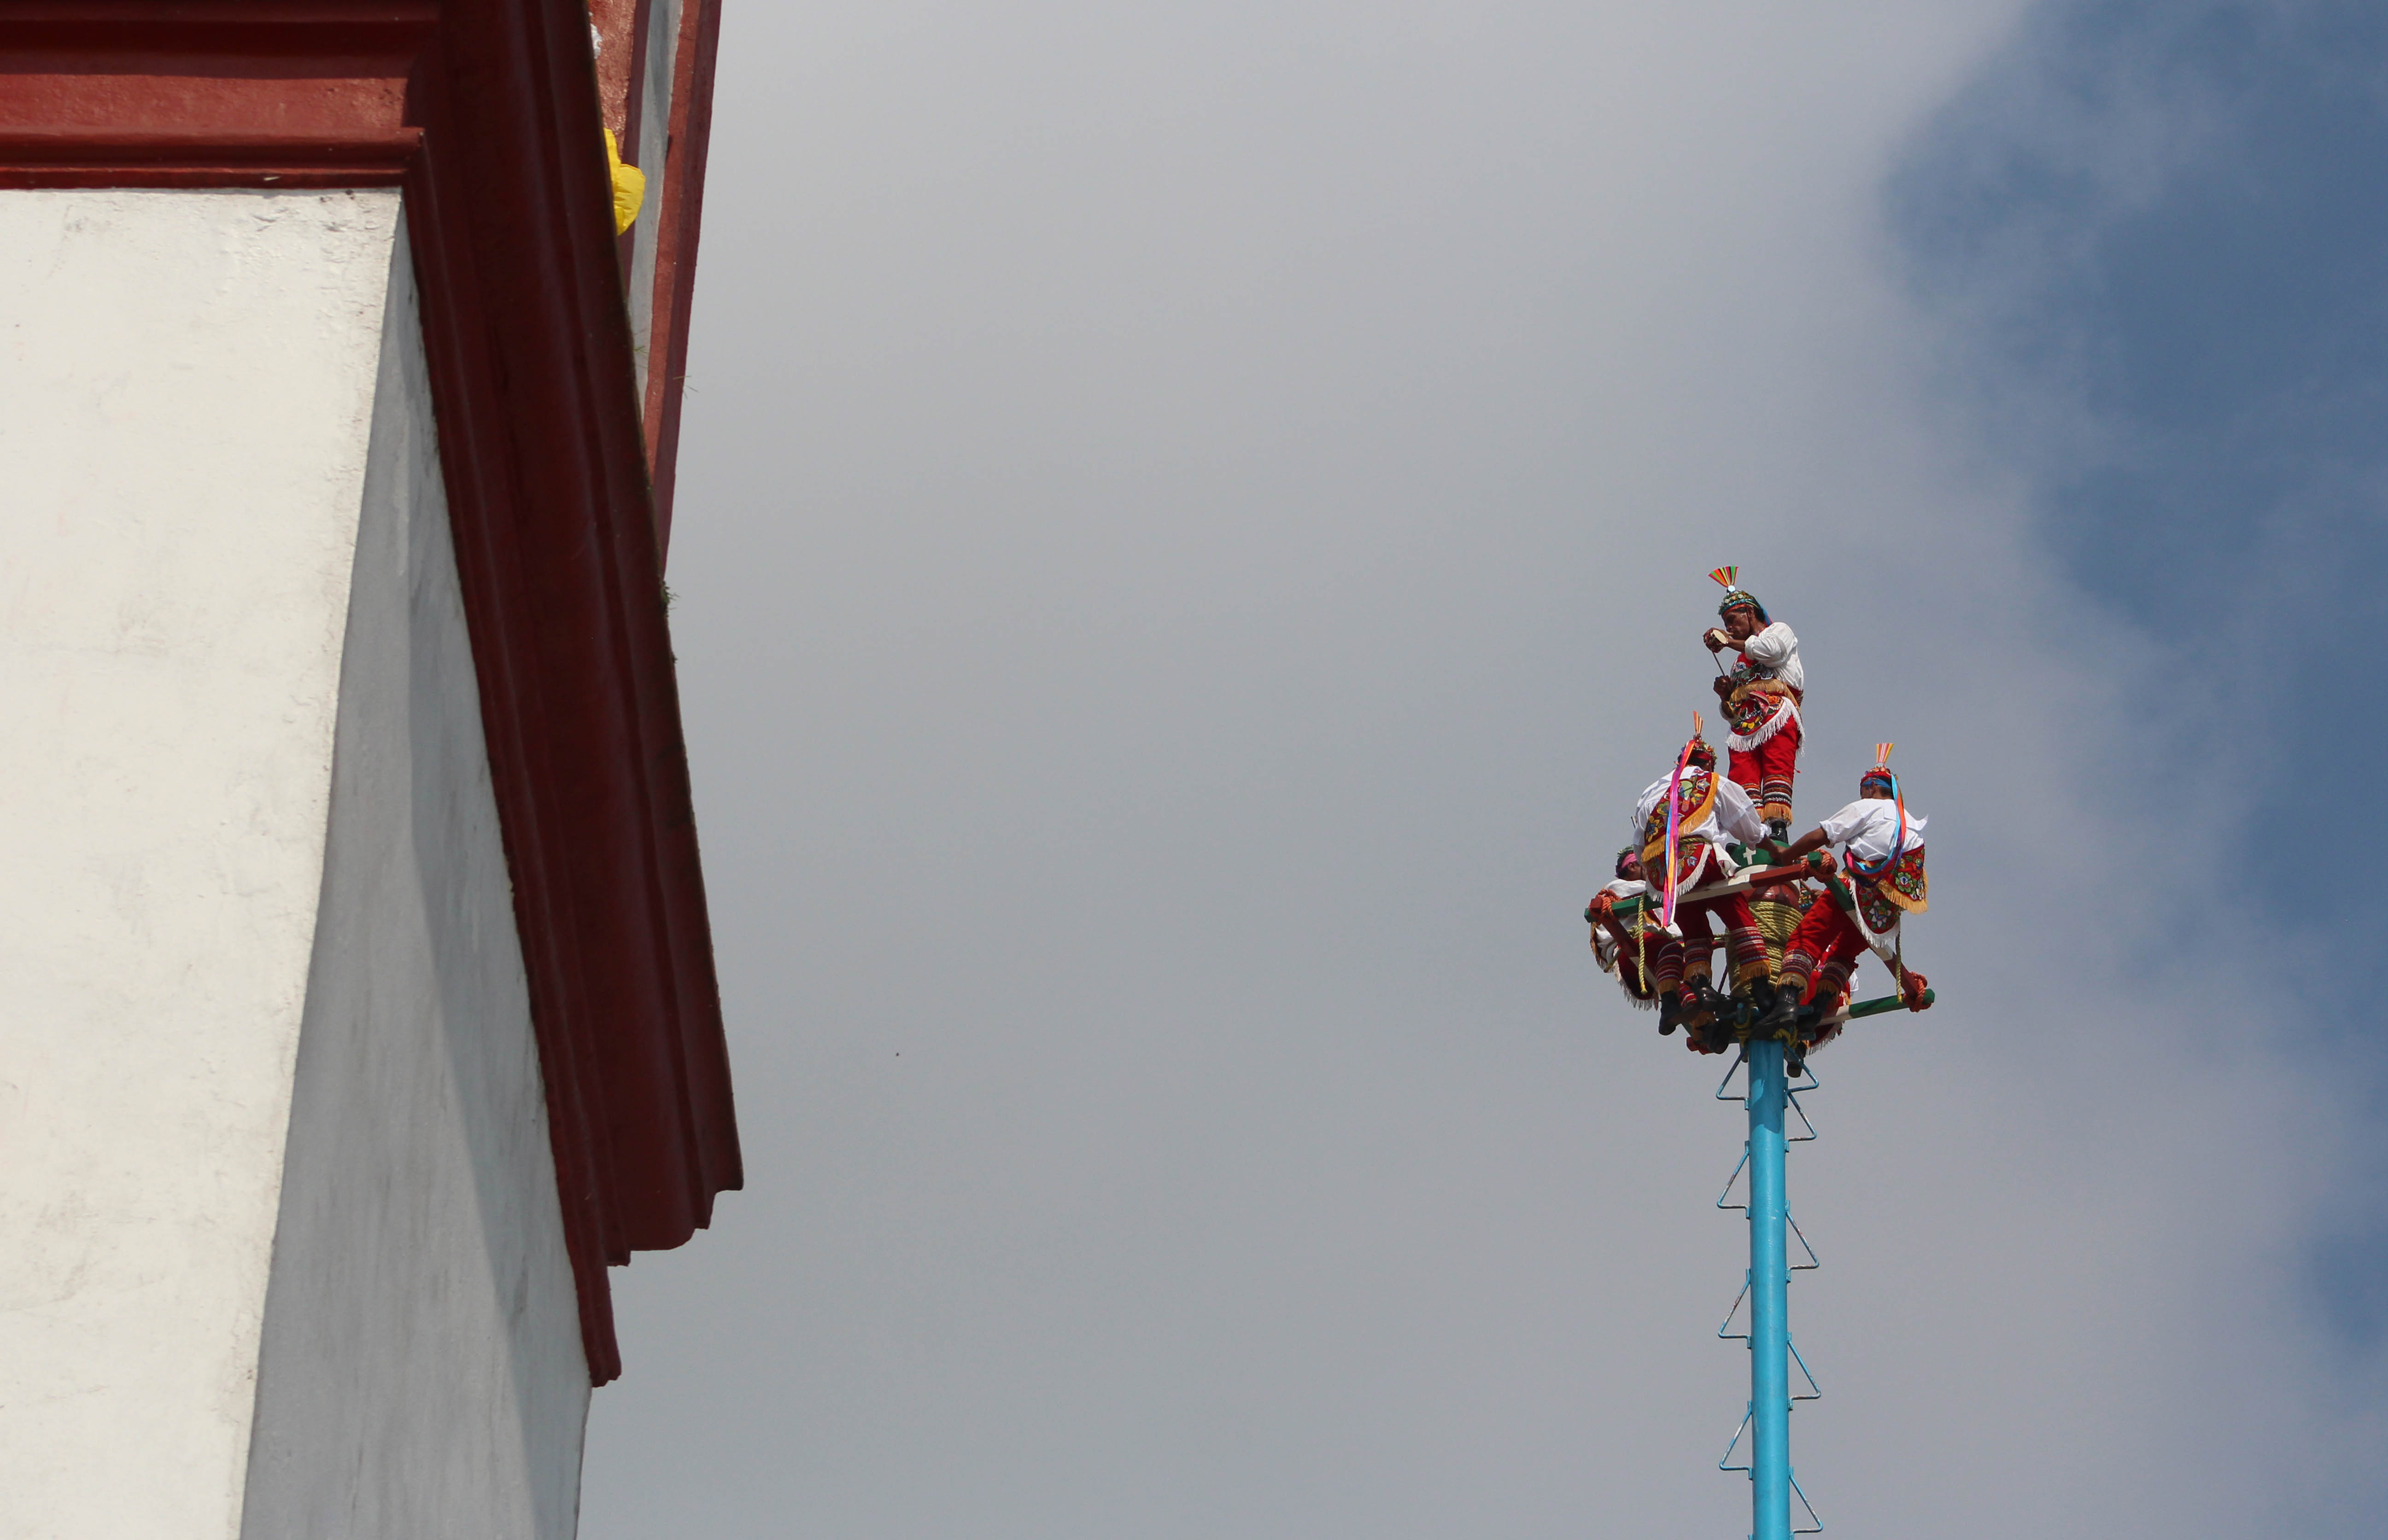 A caporal plays his song before the voladores take flight. (Photo by Amado Treviño)